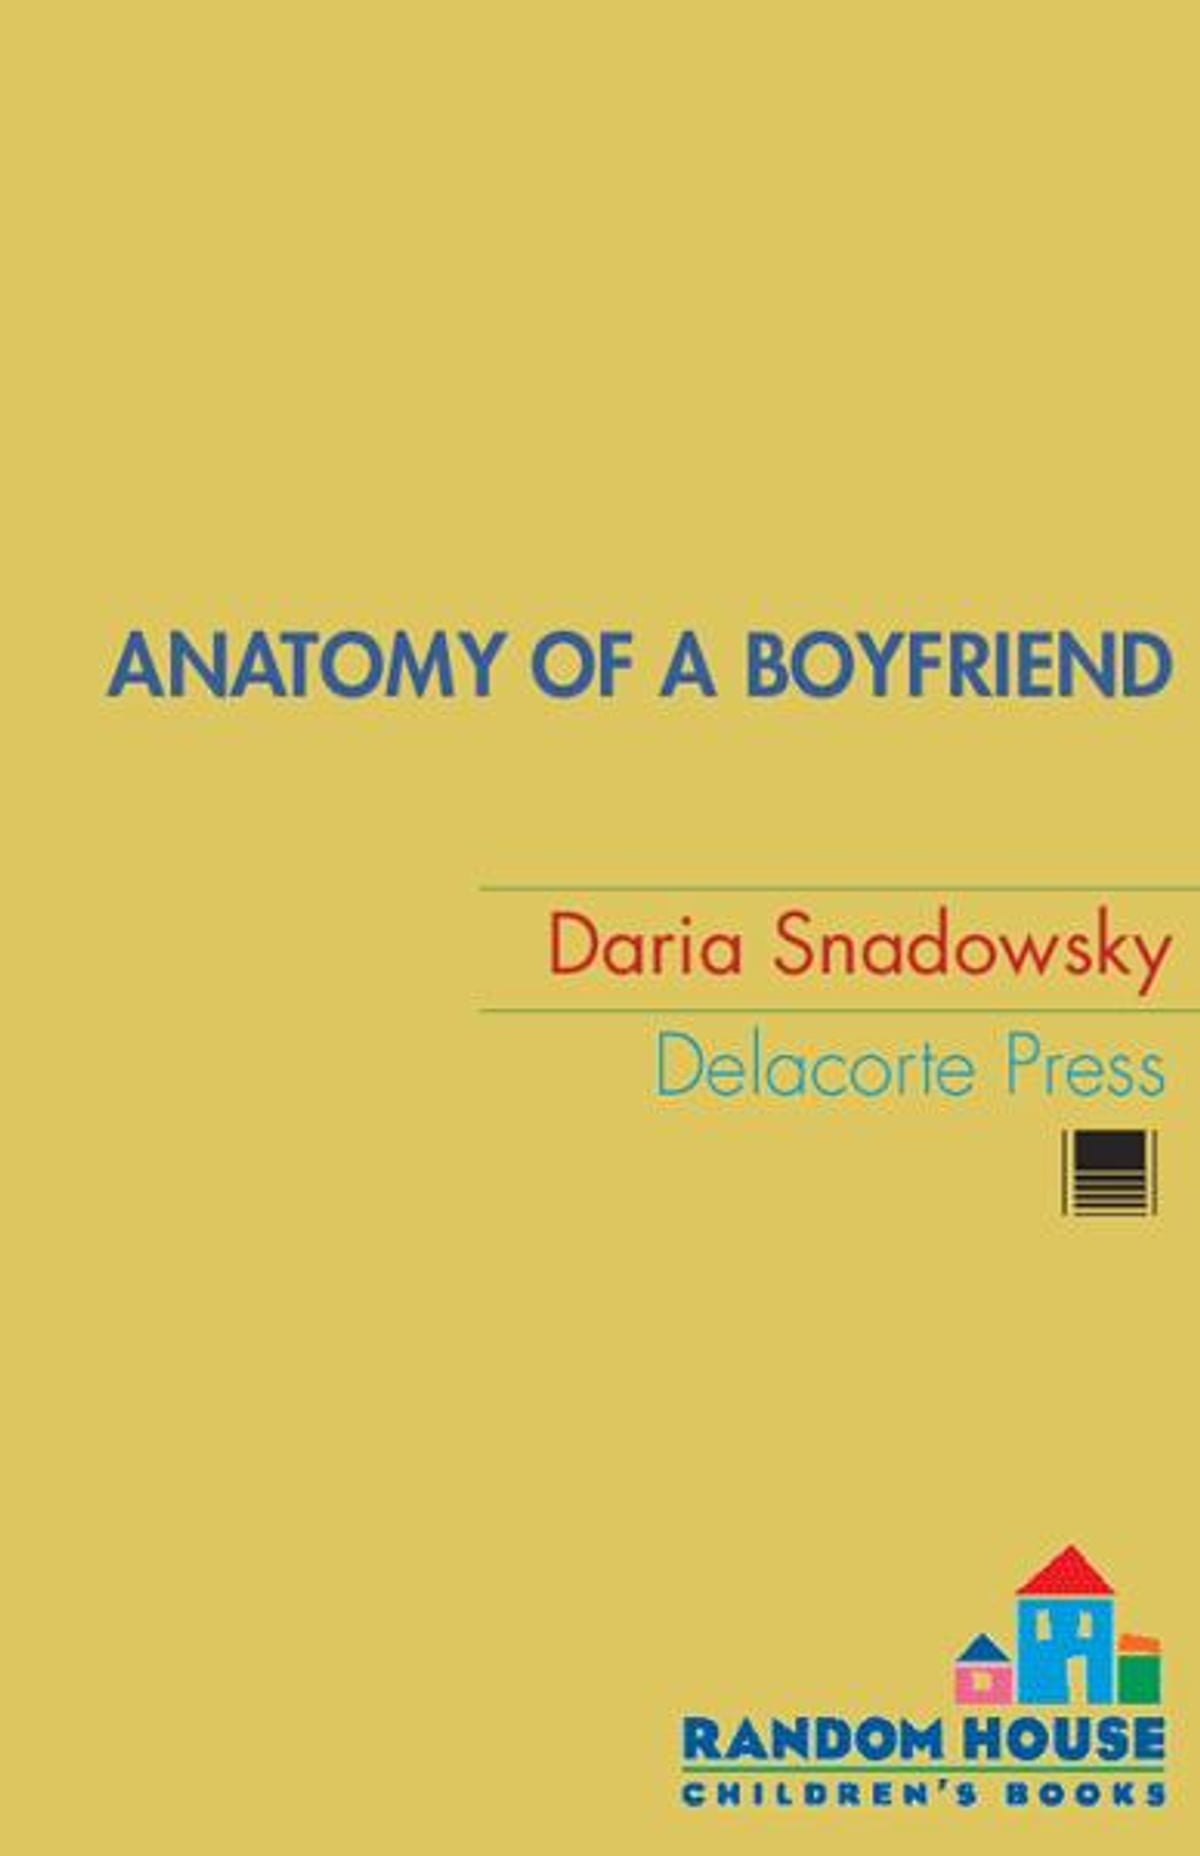 Anatomy Of A Boyfriend Ebook By Daria Snadowsky 9780375891120